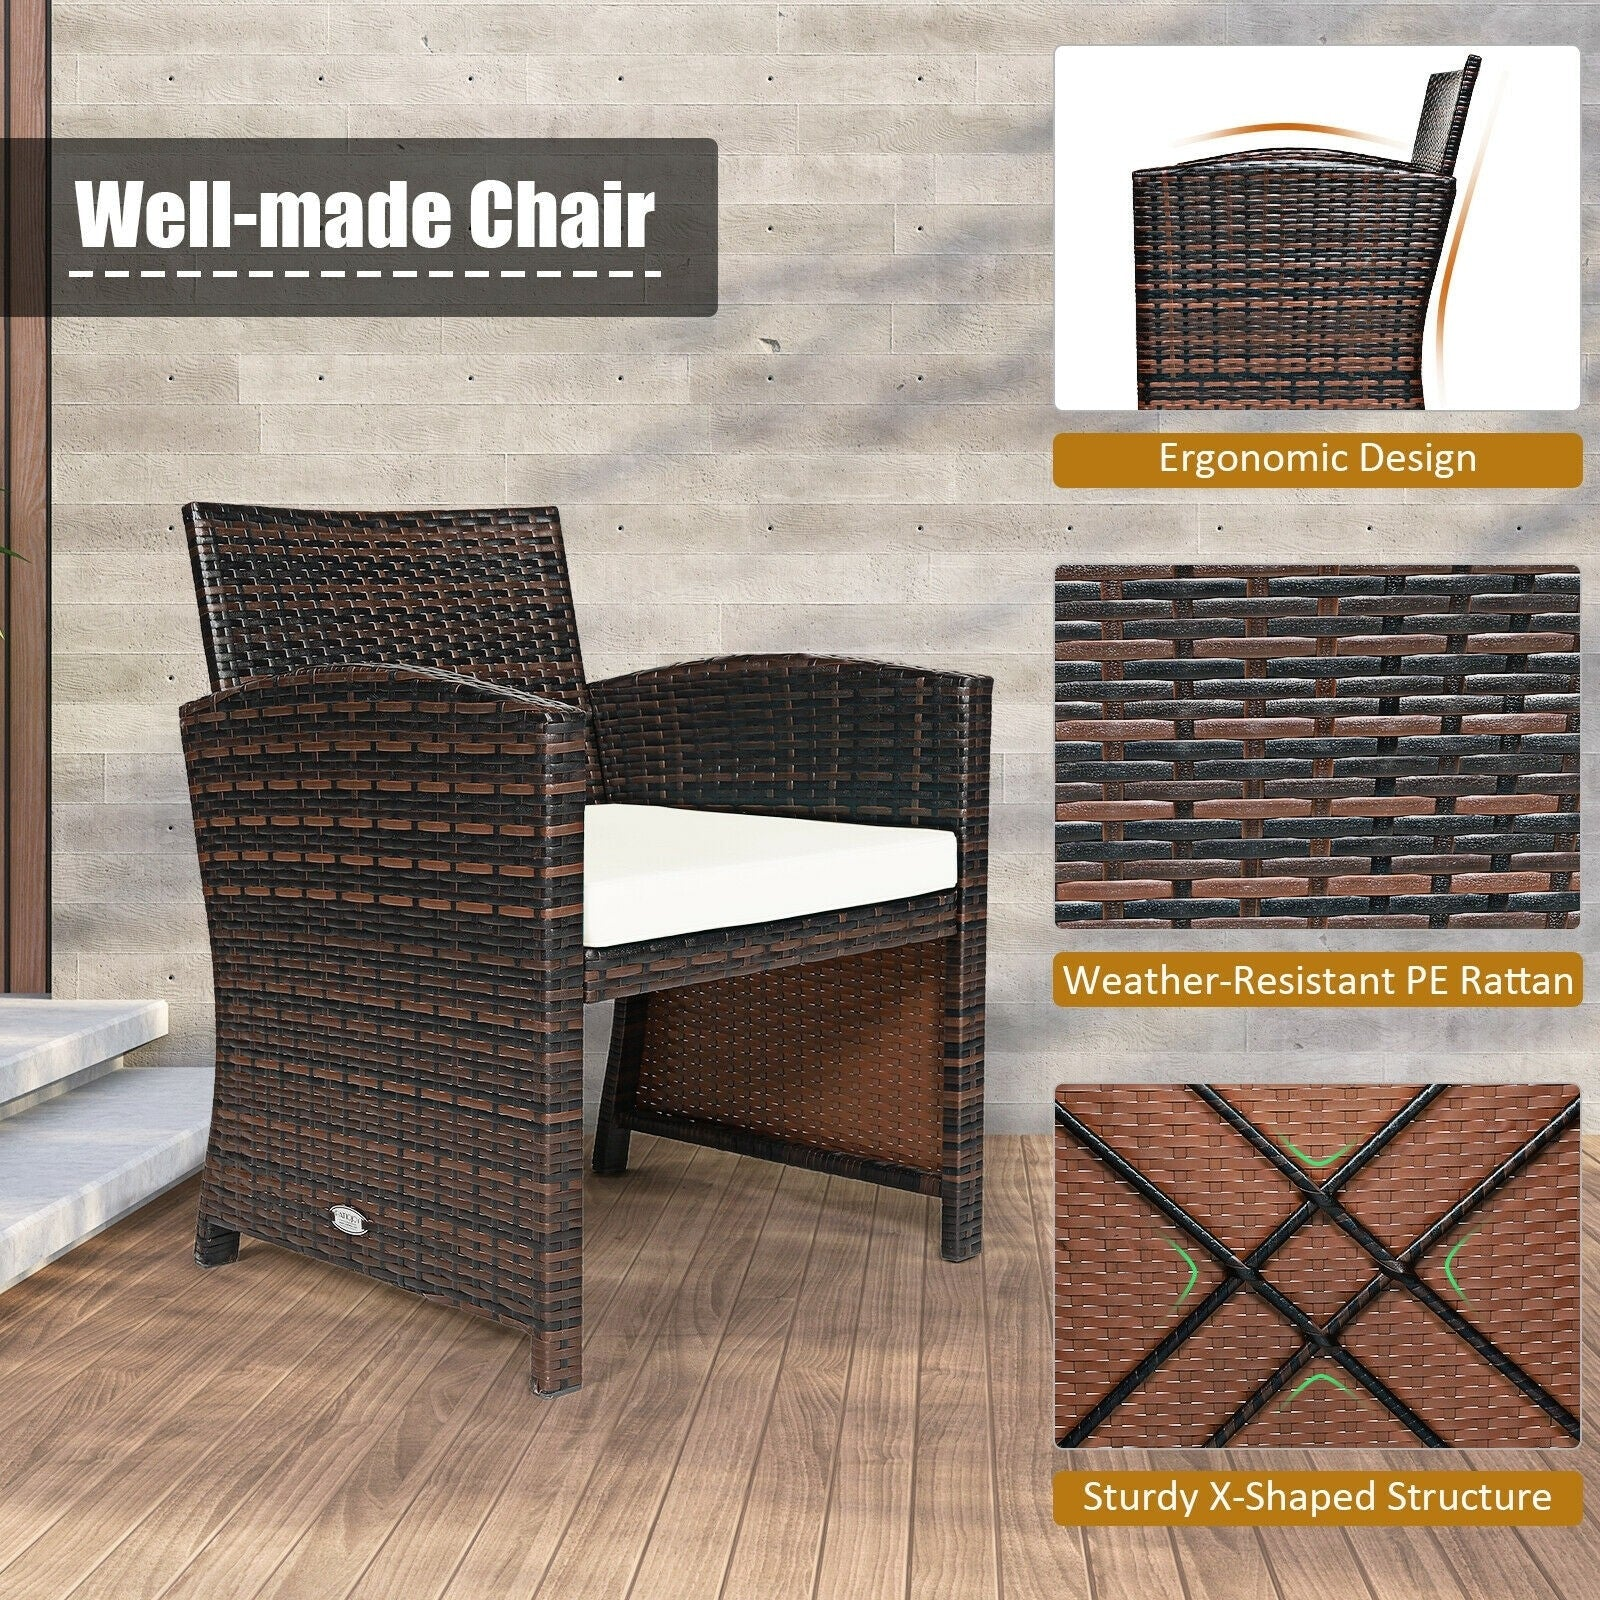 3 Pieces Outdoor PE Rattan Furniture Set with Cushion Chair and Coffee Table